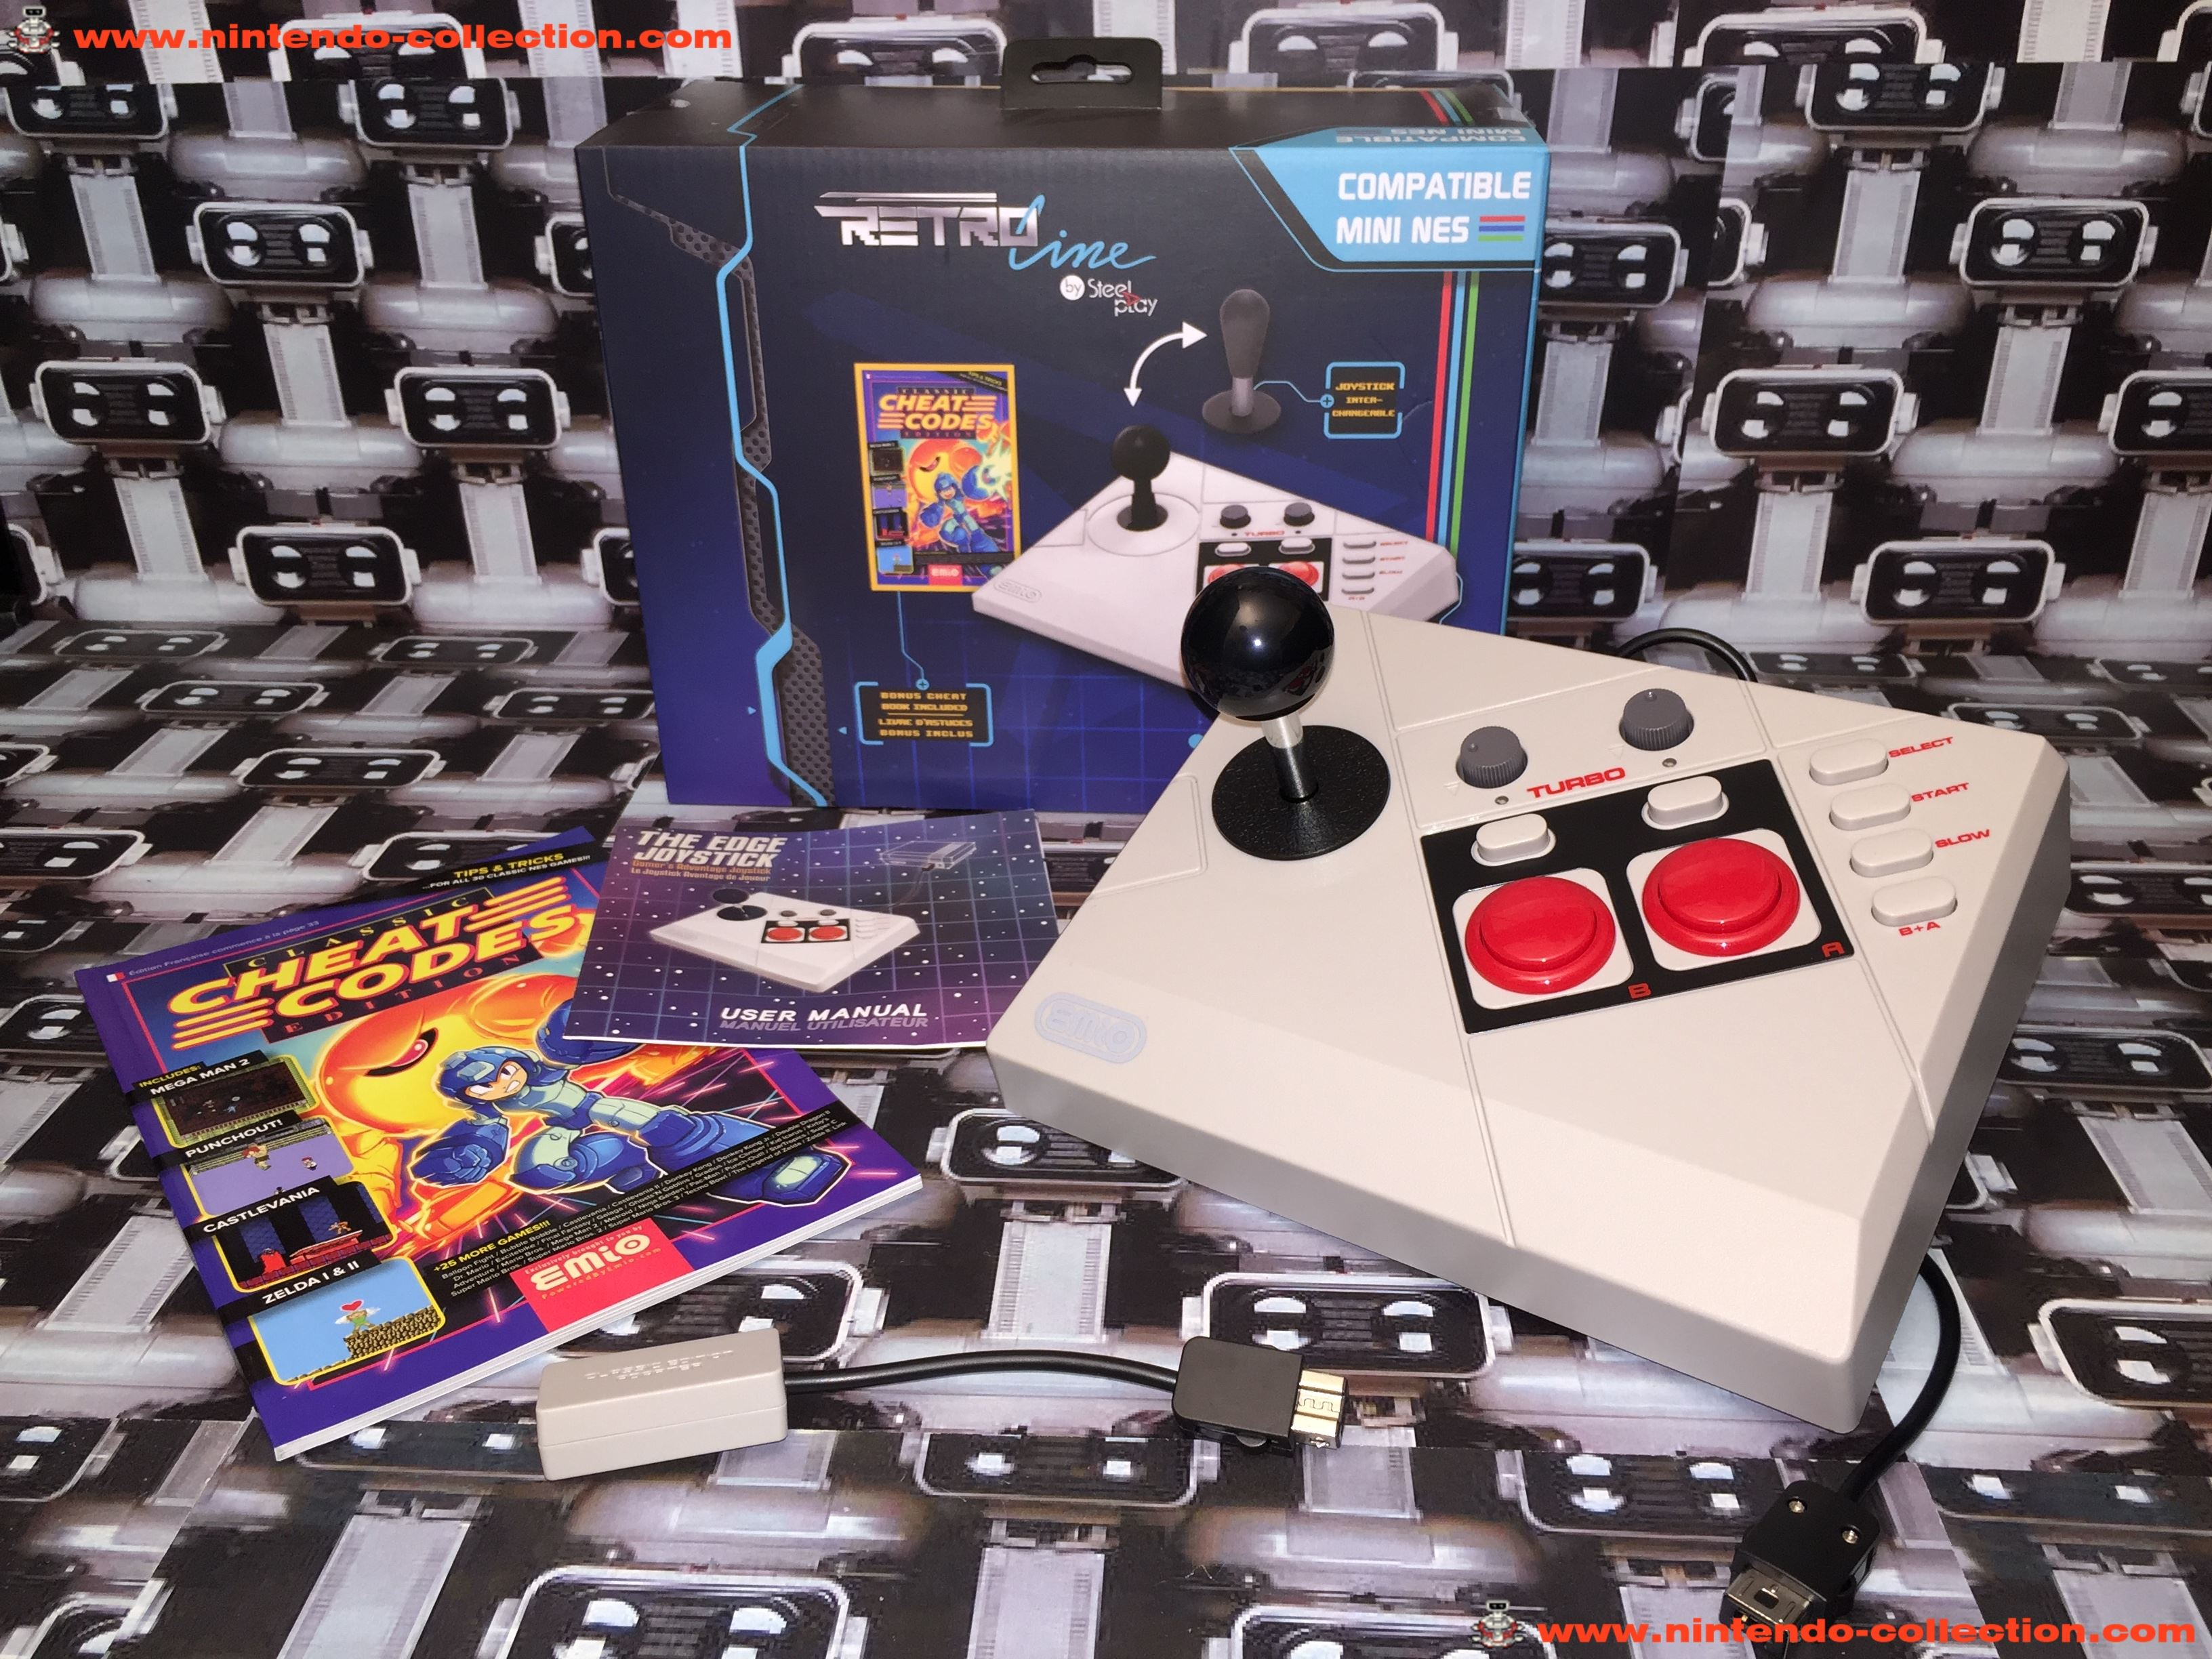 www.nintendo-collection.com - Nintendo Classic Mini Edge Arcade Stick Joystick Nes Nintendo Entertai